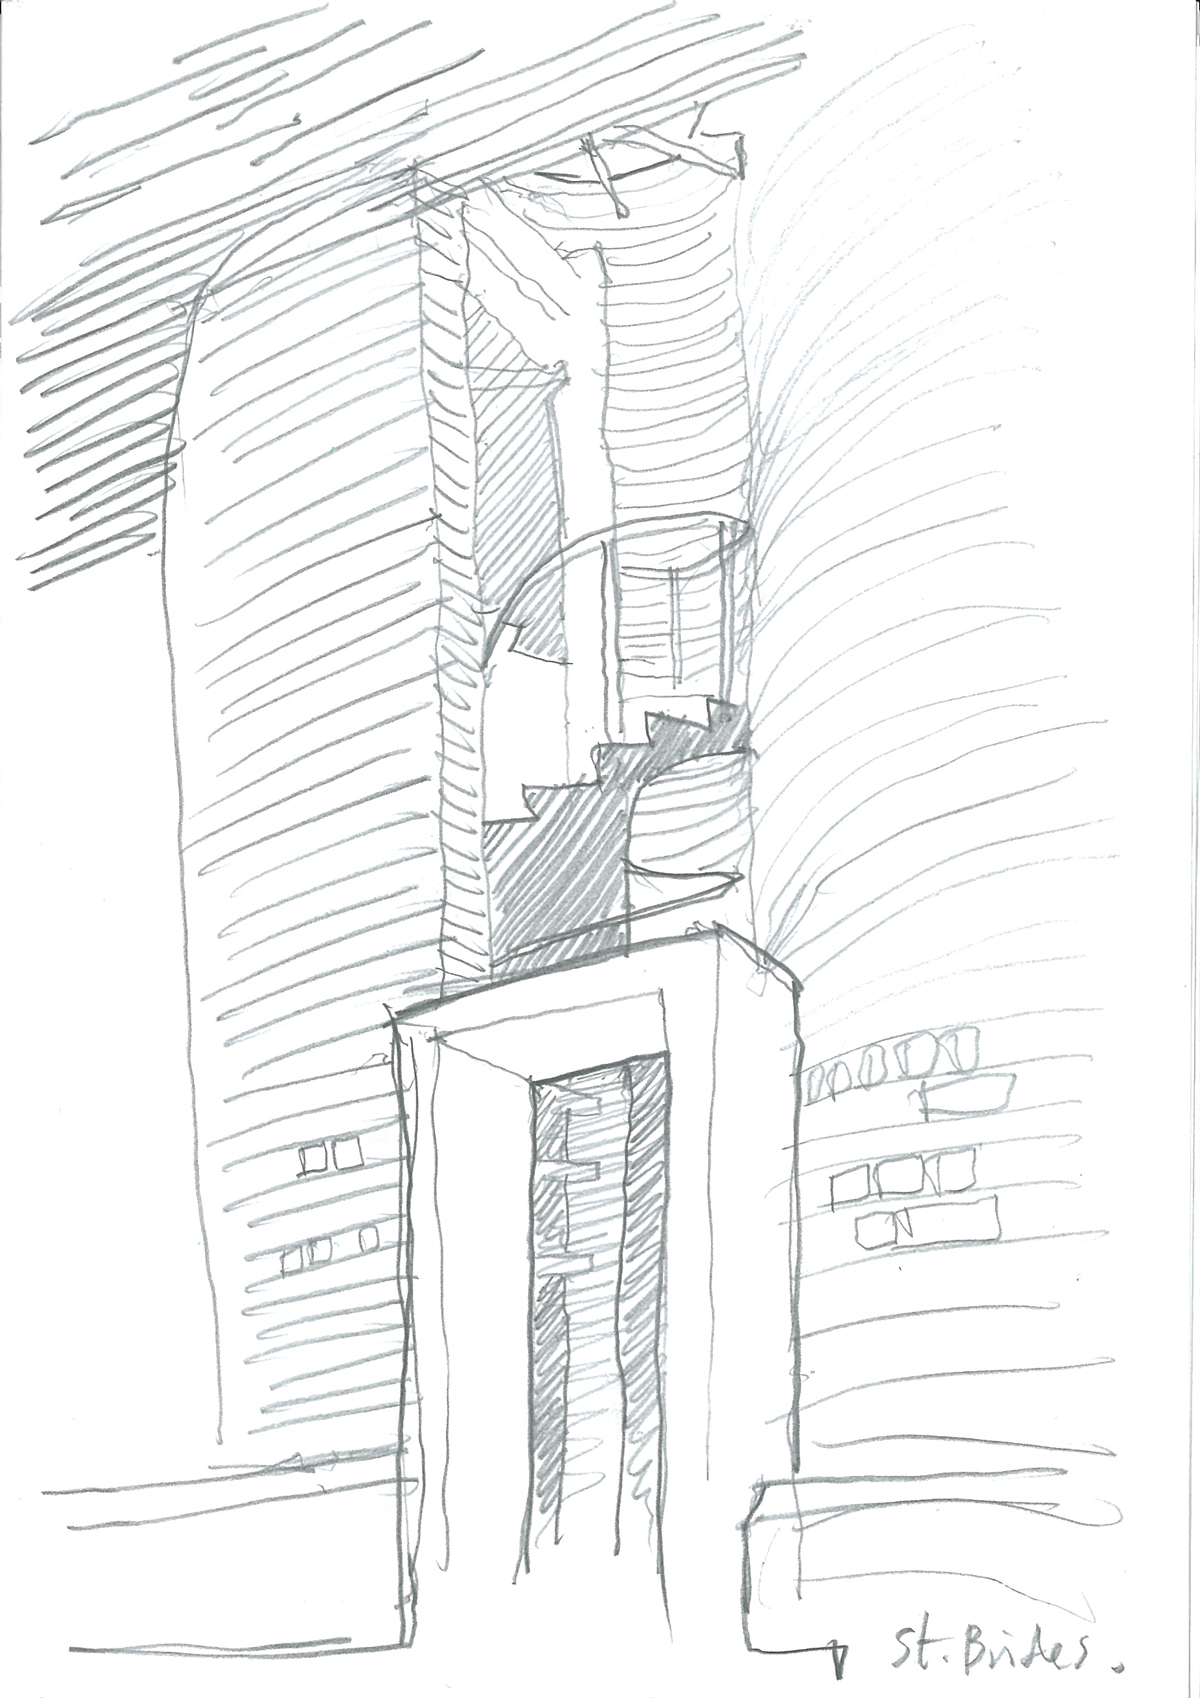 lsi-architects_st-brides-east-kilbride_glasgow_sketch_02